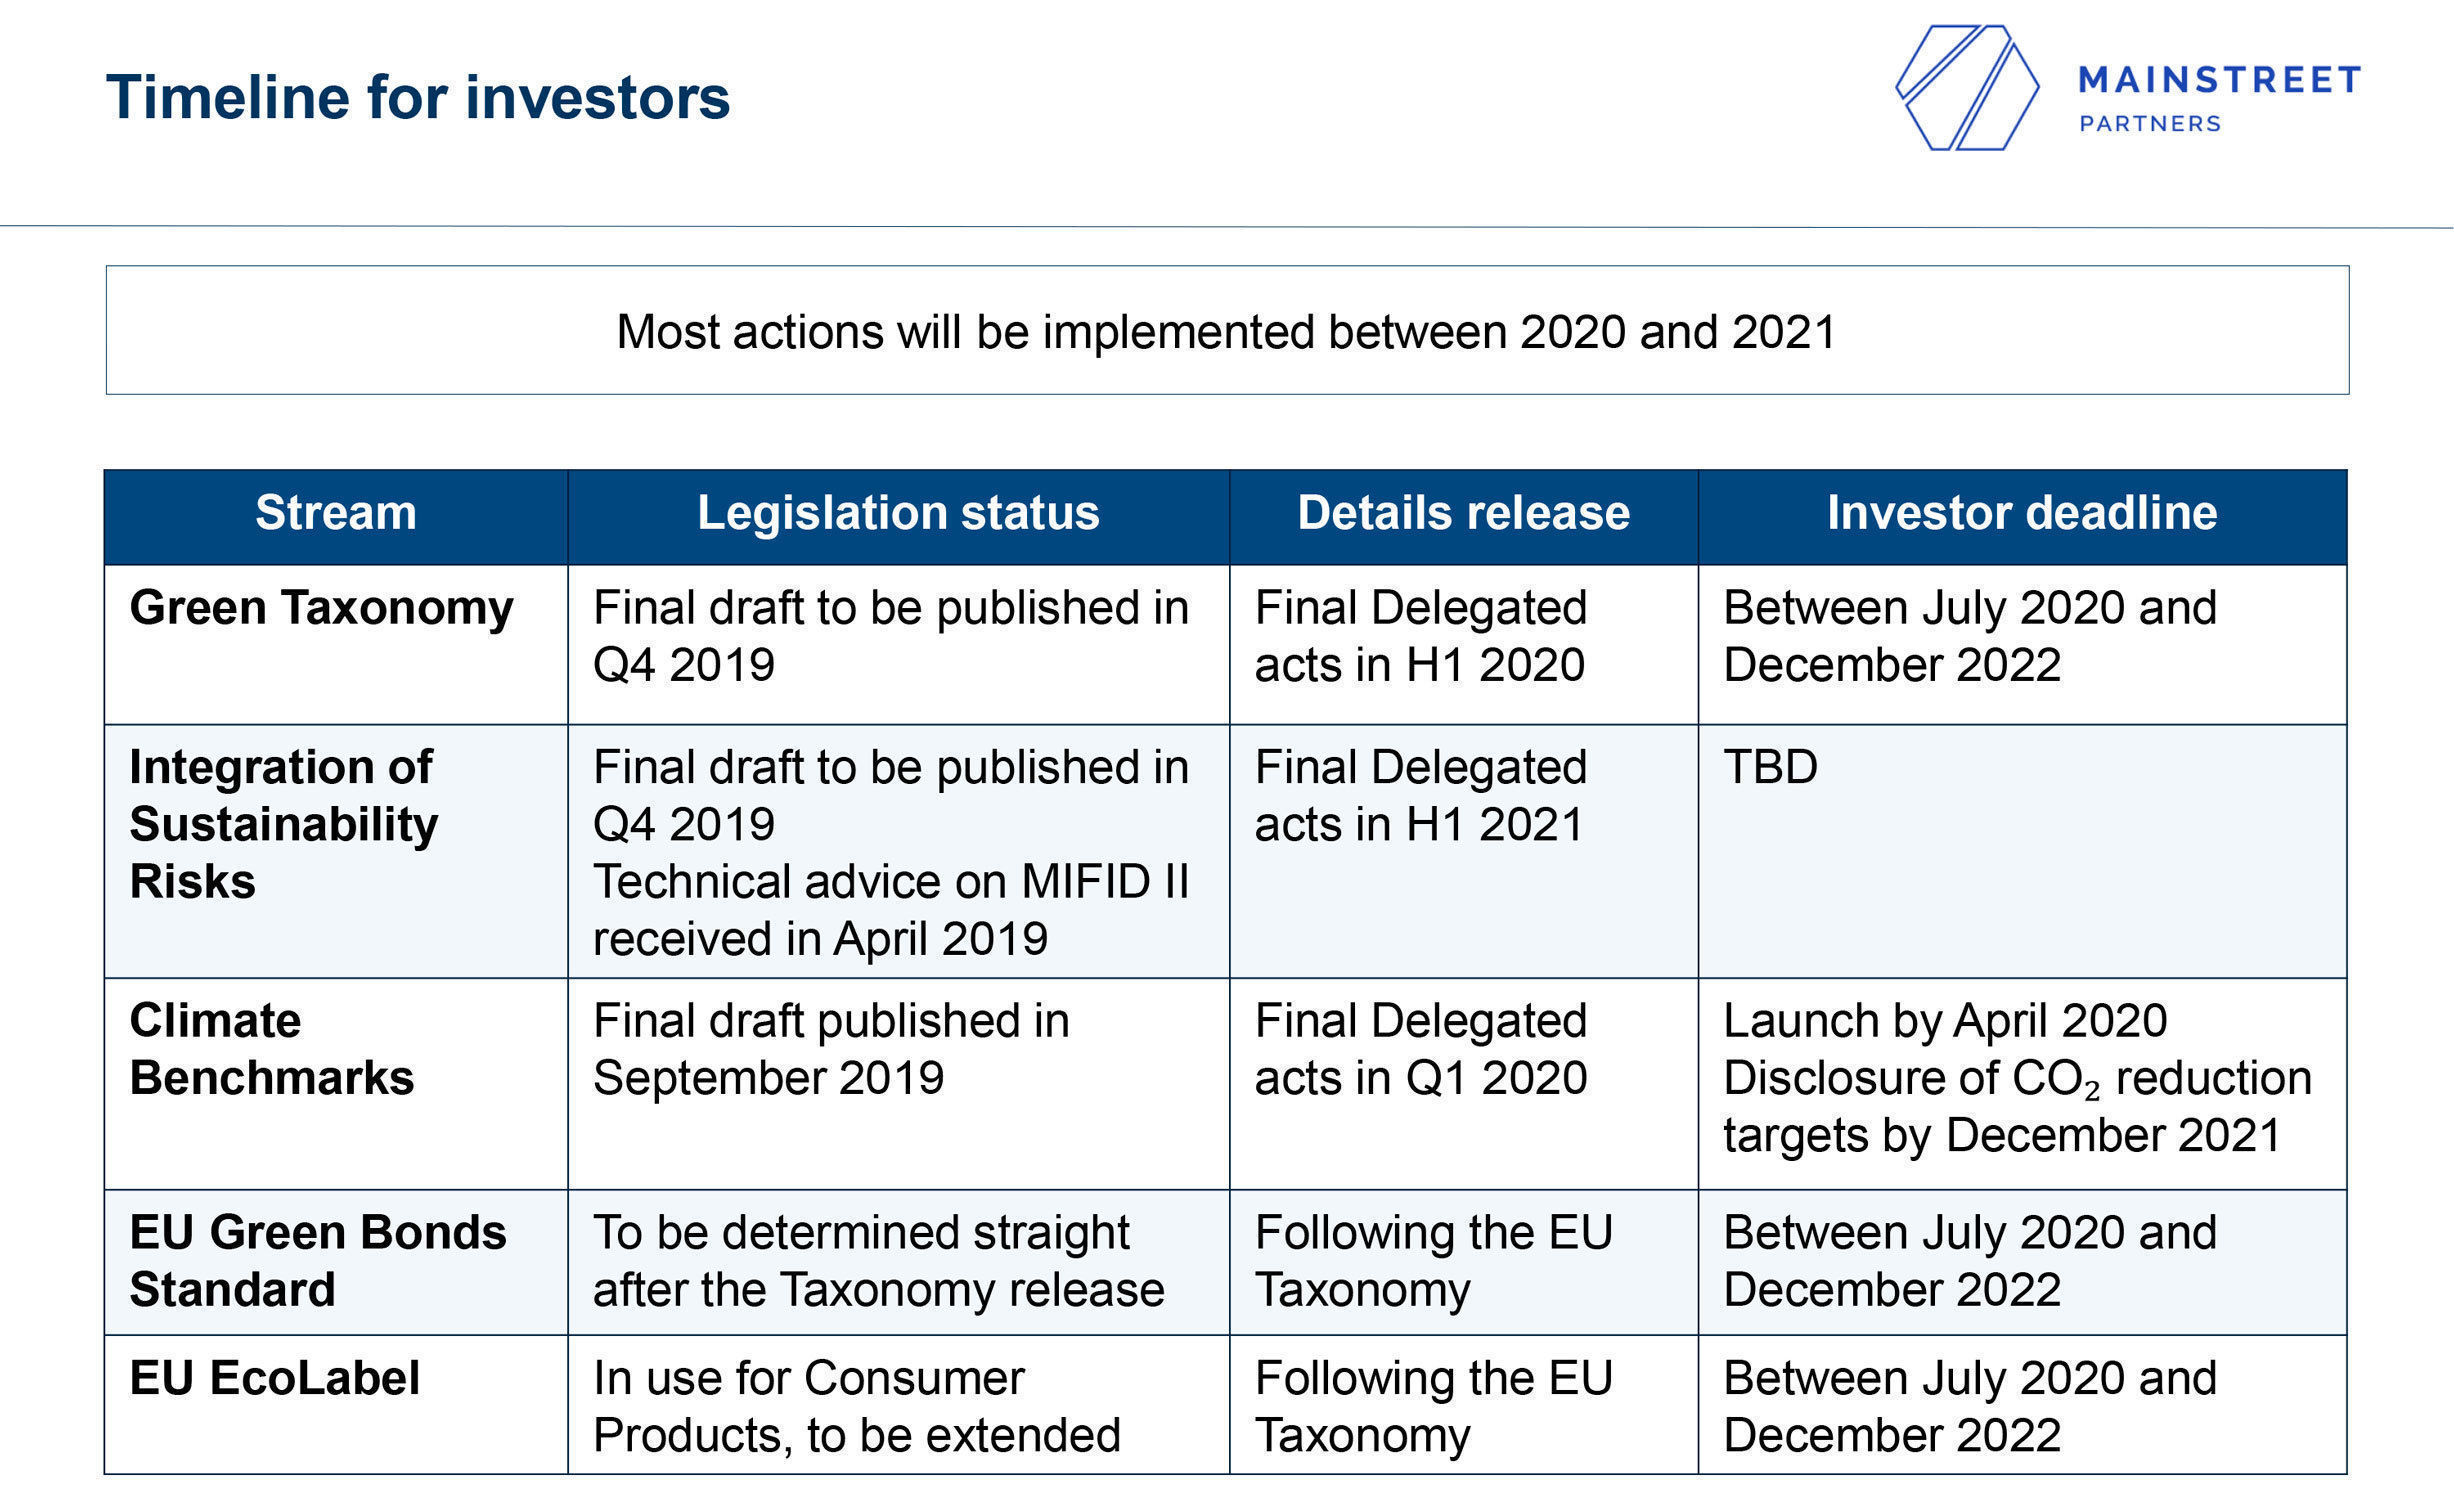 Timeline for Investors, MainStreet Partners